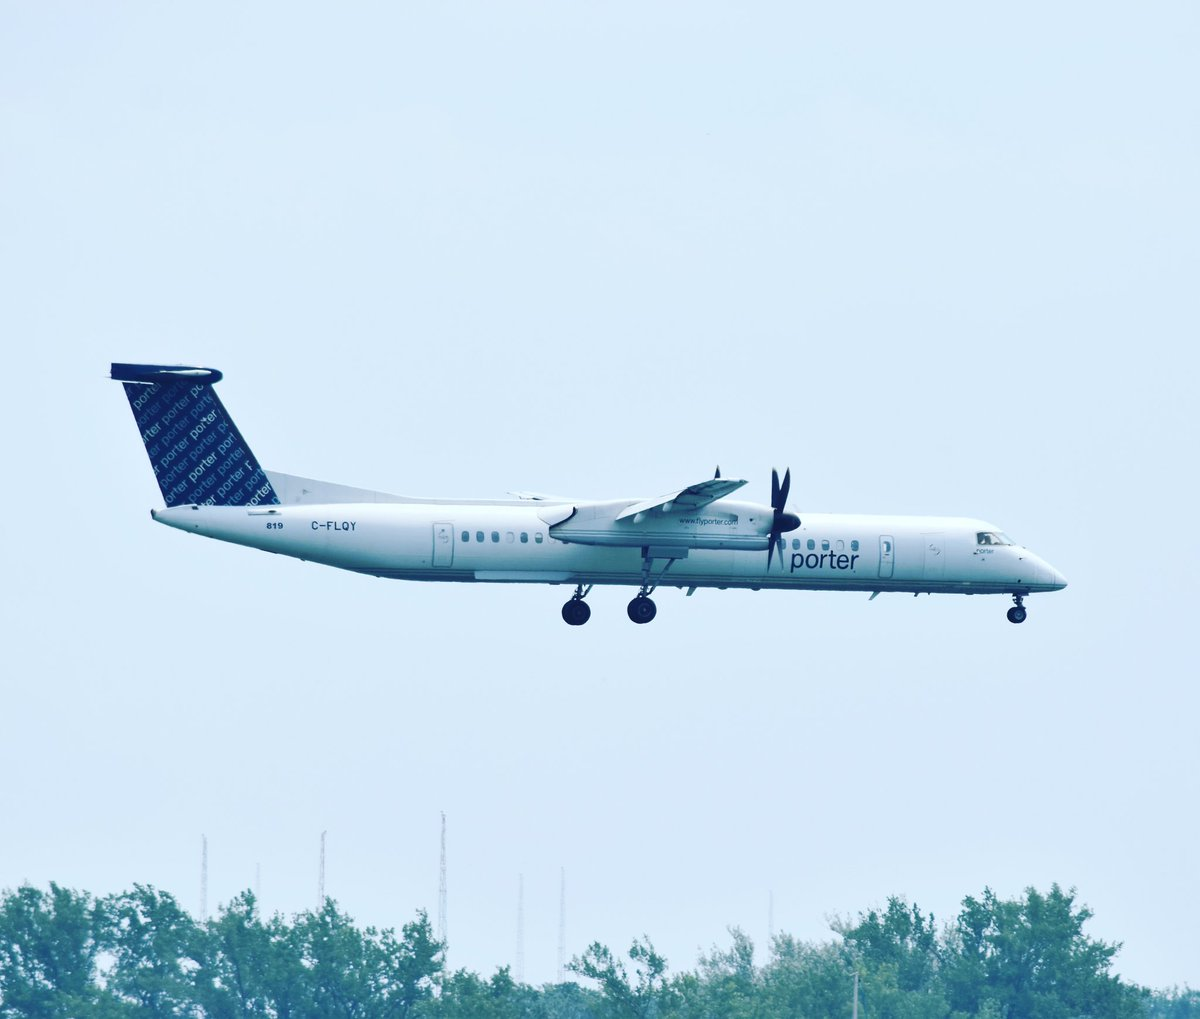 q400 tagged Tweets and Download Twitter MP4 Videos | Twitur